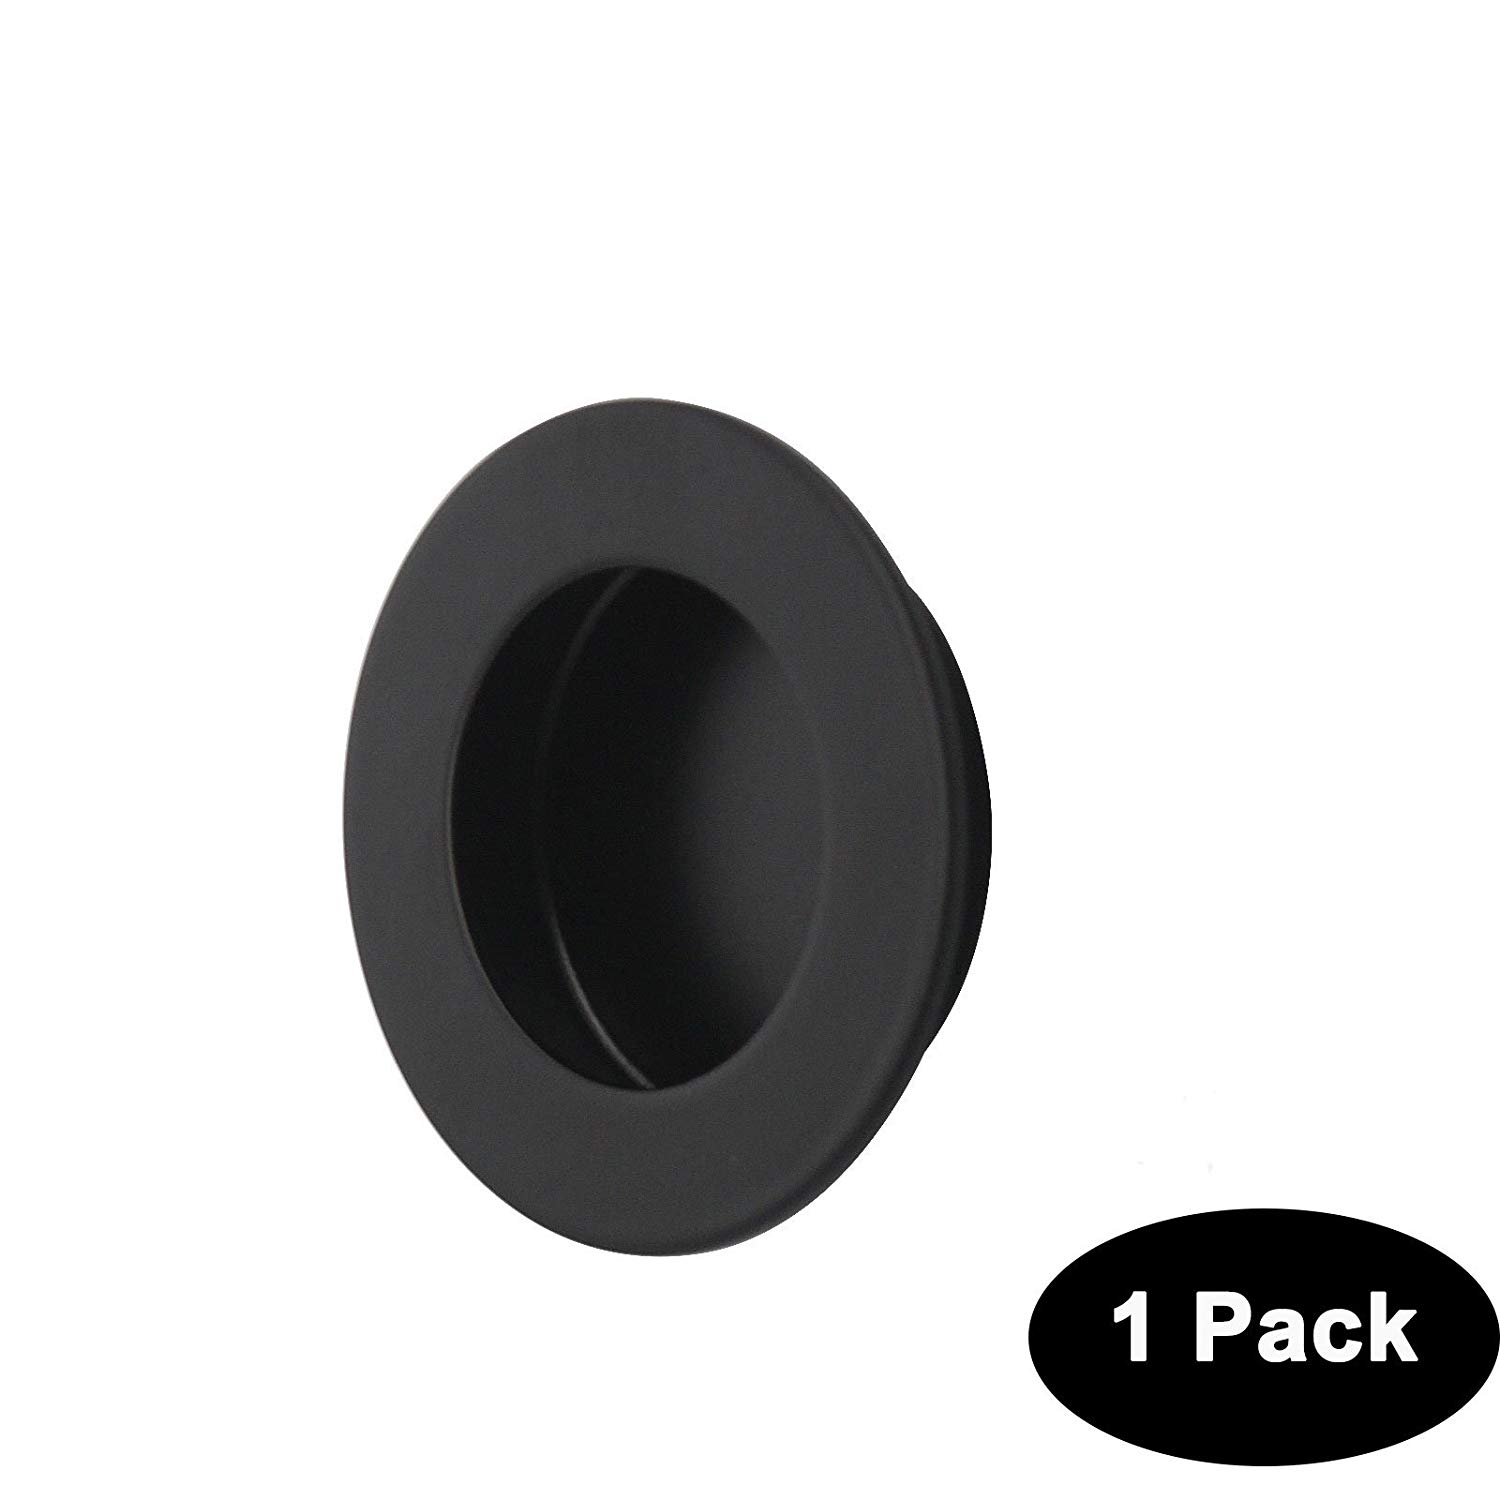 Probrico 1 Pack Round Recessed Cabinet Knob 304 Stainless Steel Sliding Flush Door Pull Handle Black 65mm Diameter